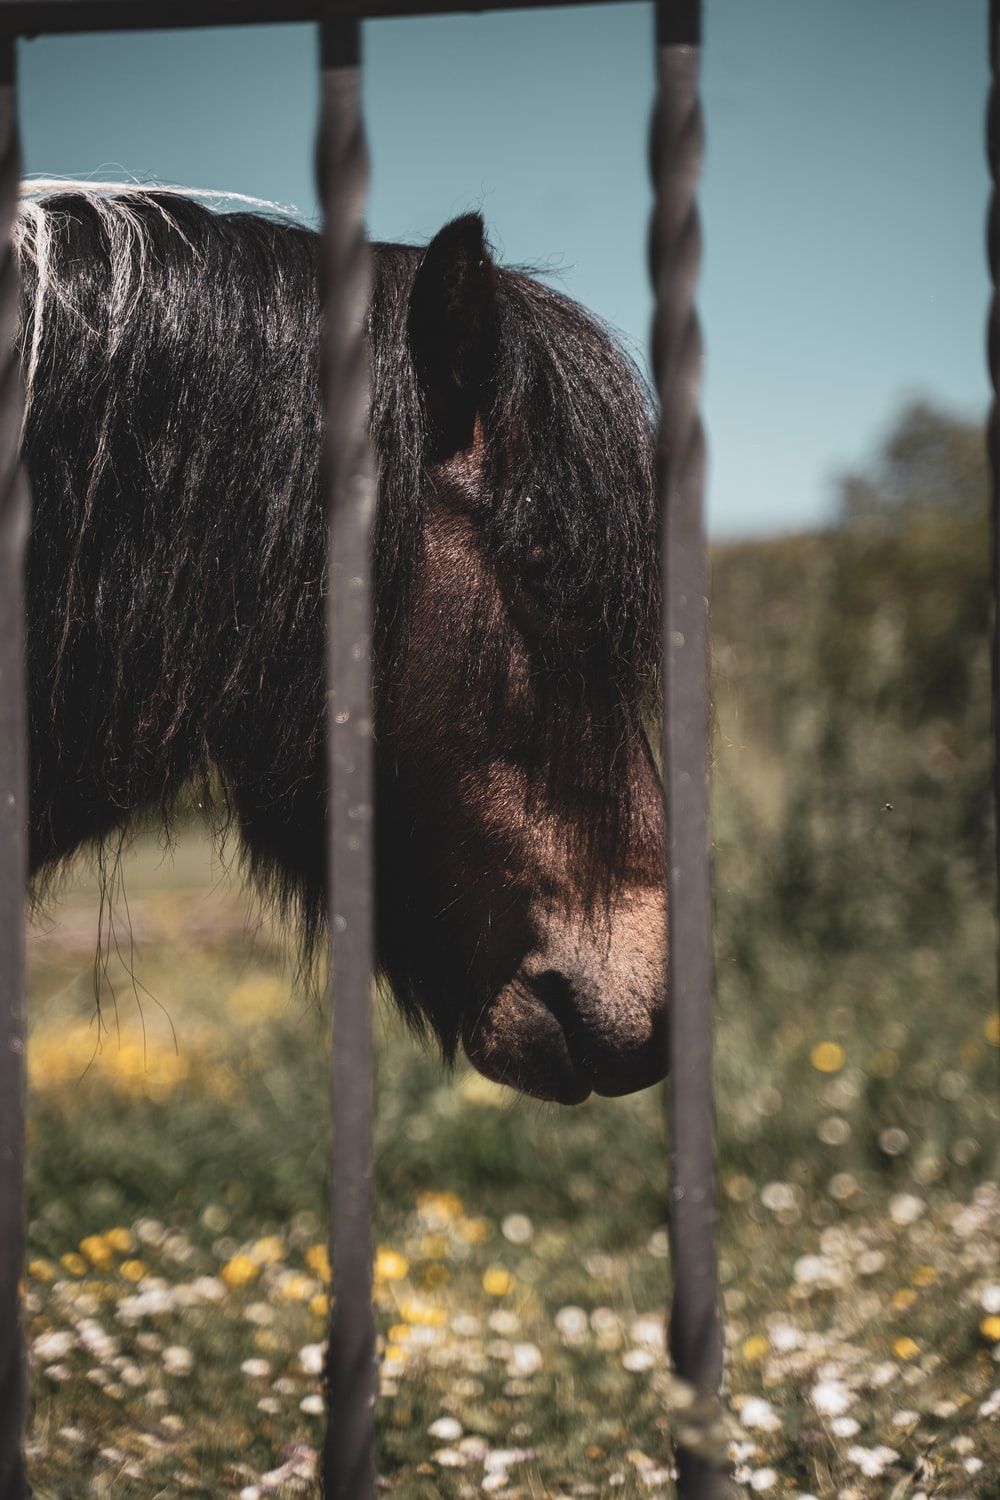 black horse in close up photography during daytime